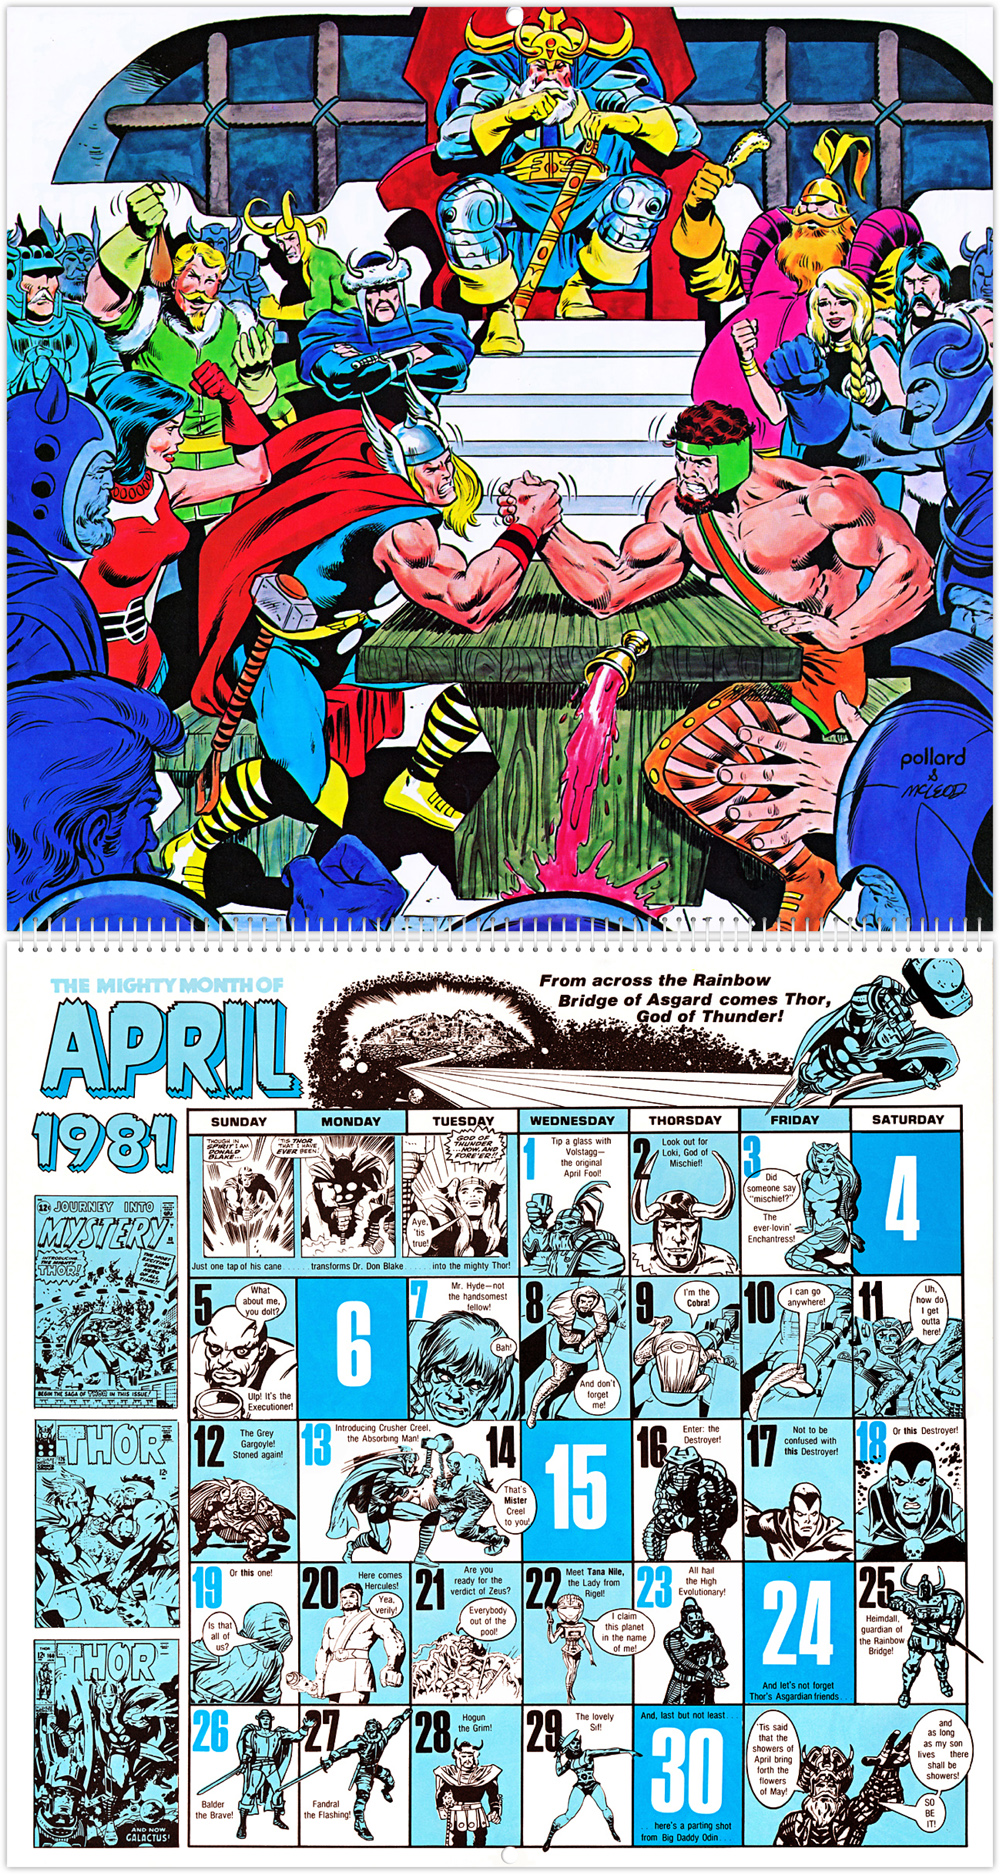 marvel comics u2019 20th anniversary calendar 1981